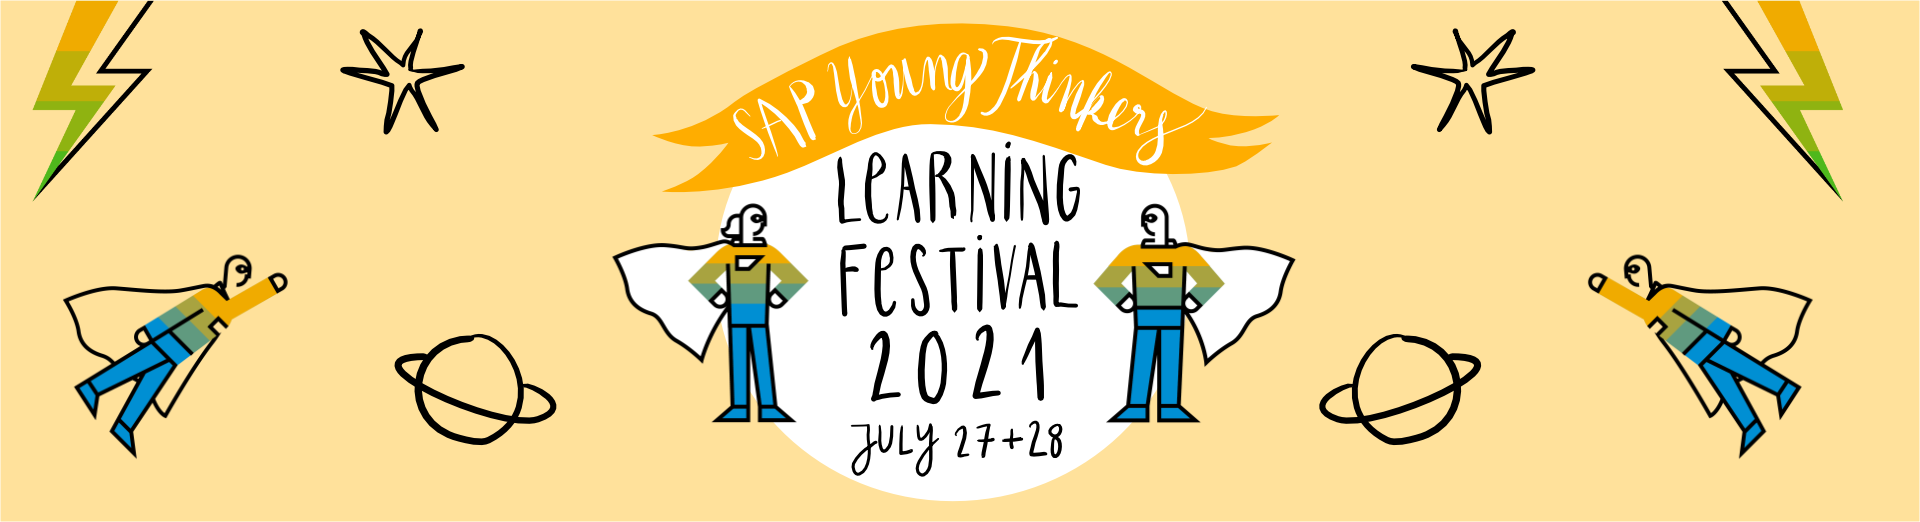 SAP%20Young%20Thinkers%20Learning%20Festival